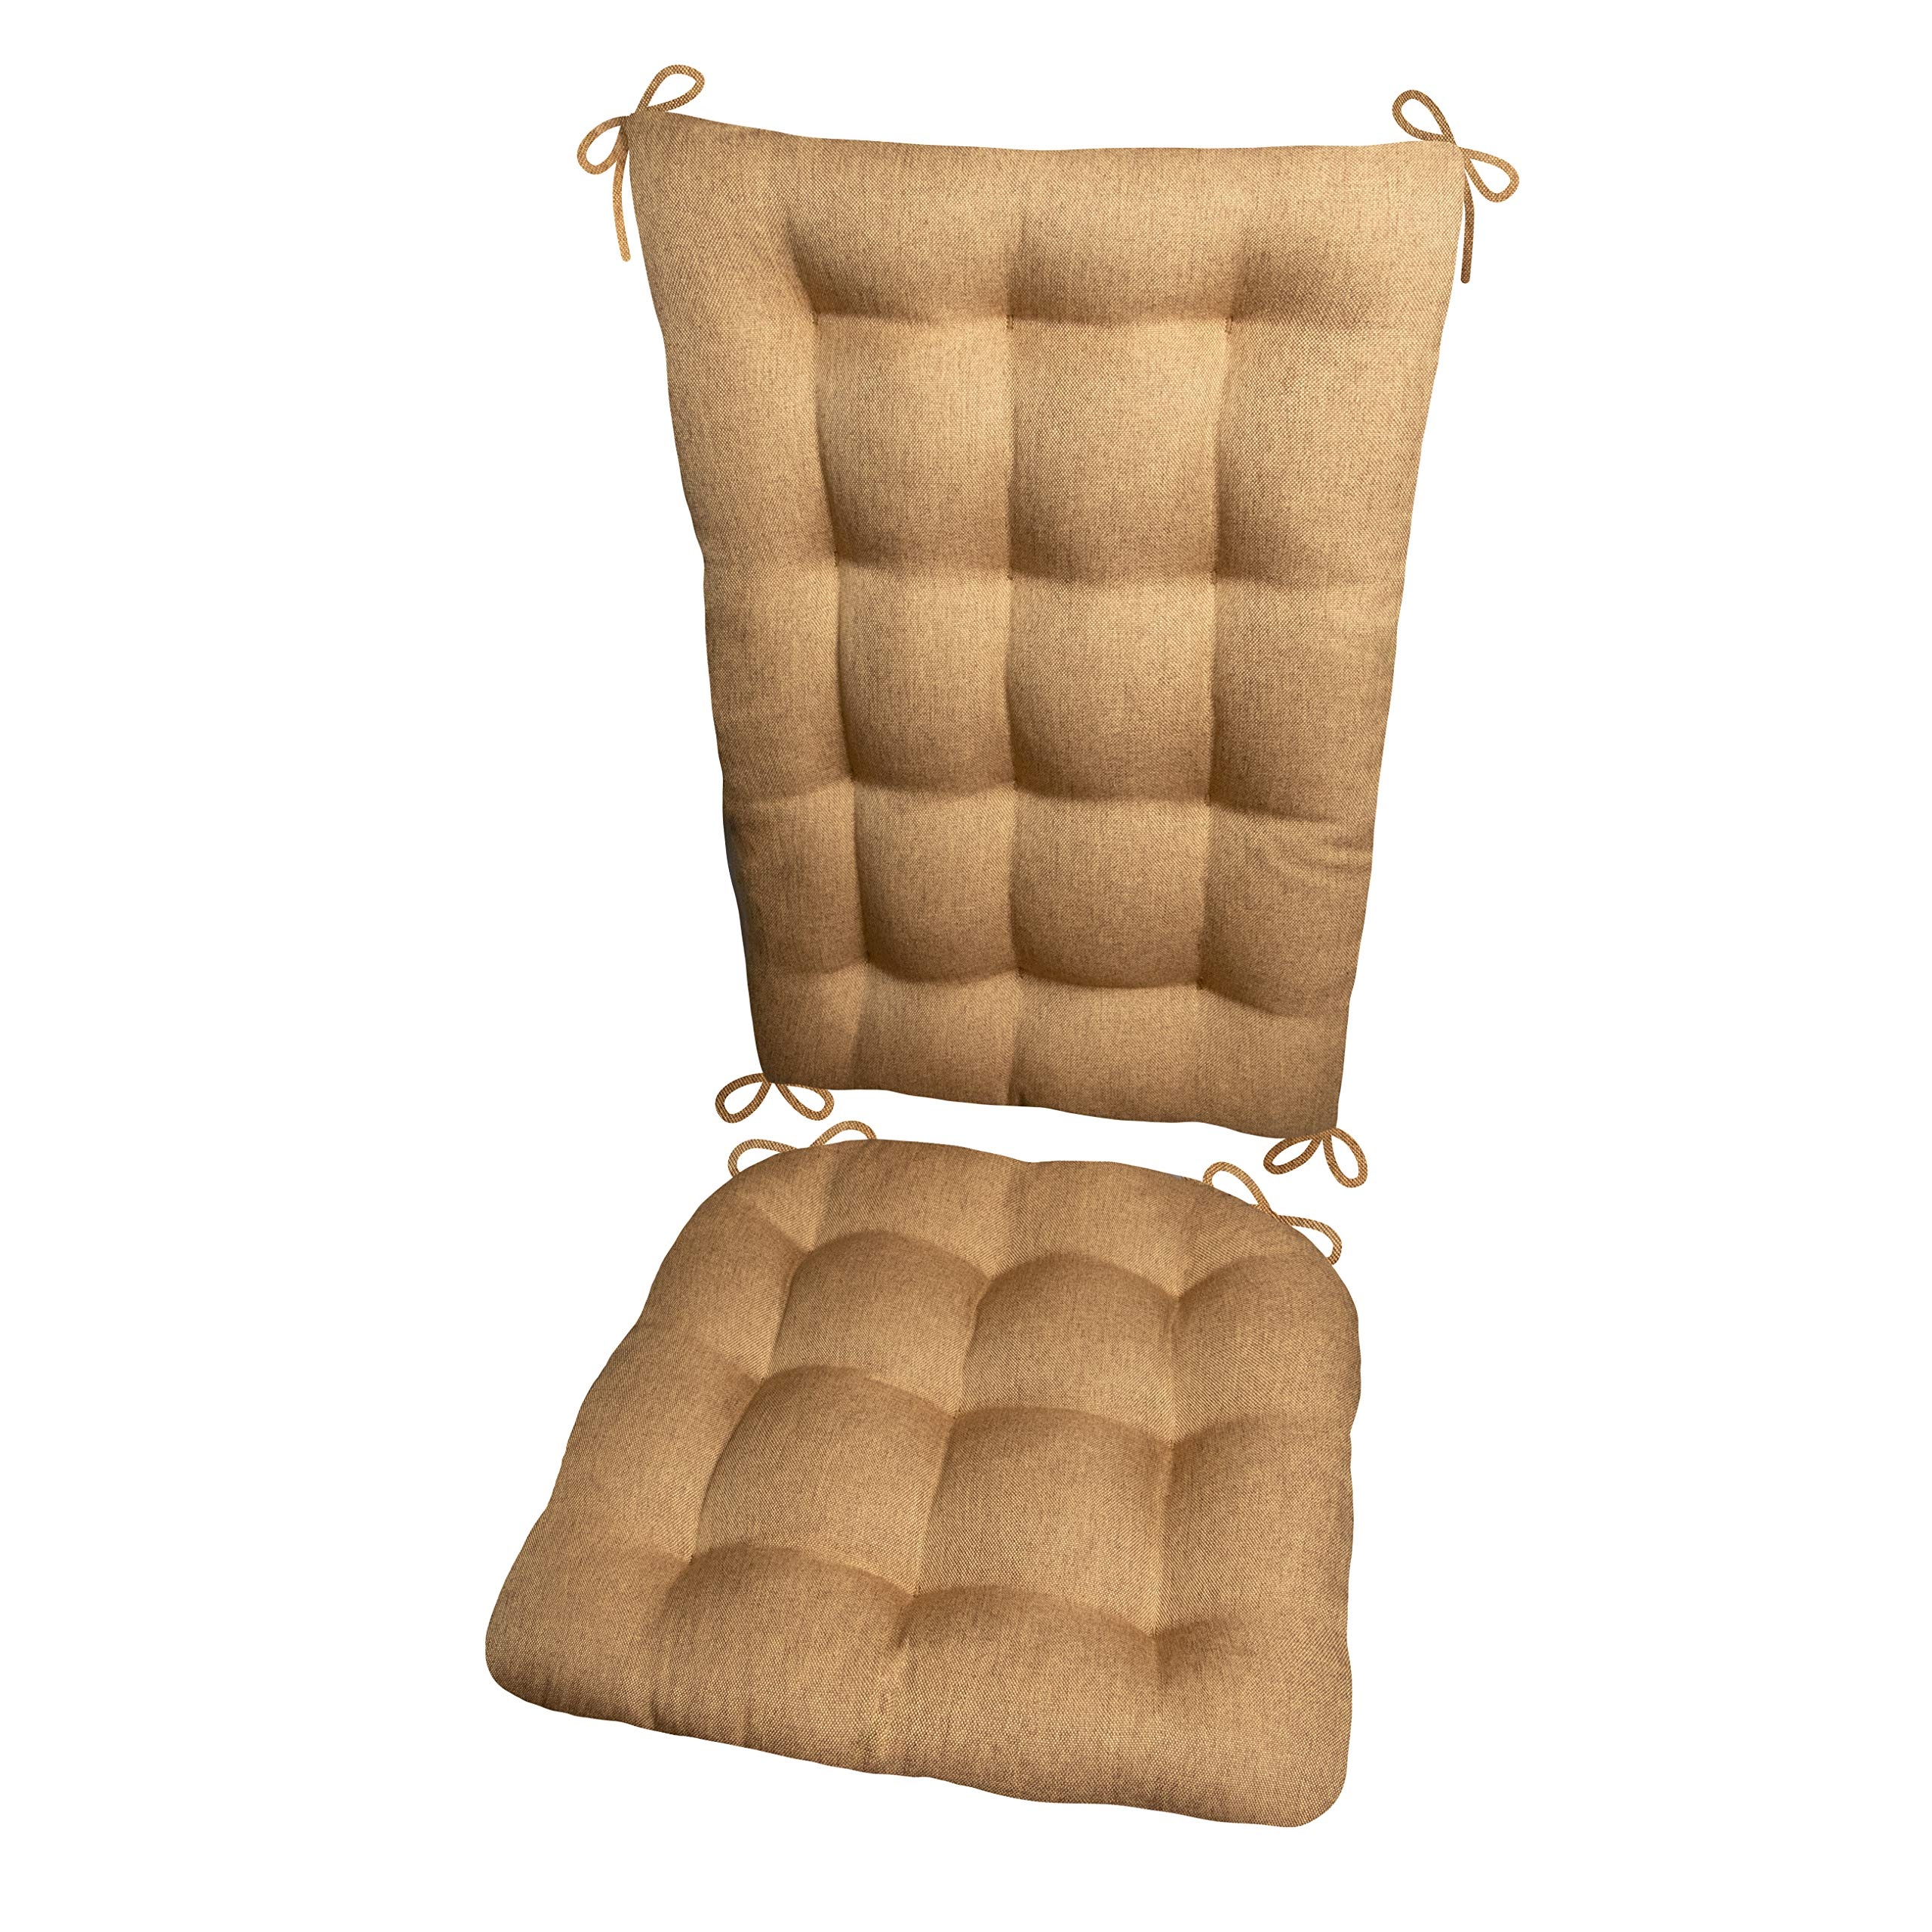 Barnett Products Rocking Chair Cushions - Hayden Copper - Reversible, Latex Foam Fill - Made in USA (Extra-Large/Honey)